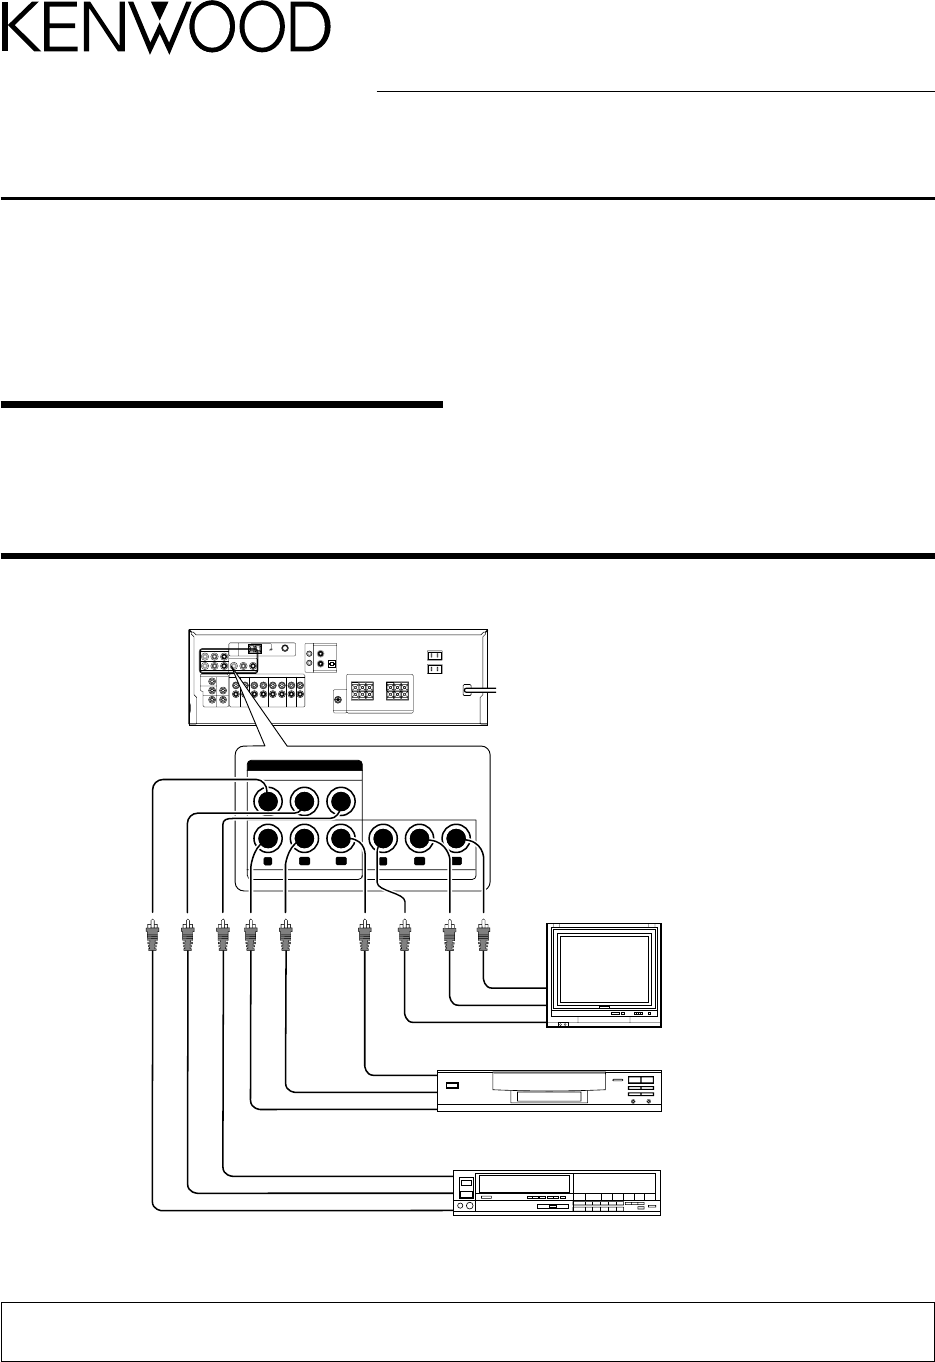 Kenwood Stereo Receiver Vr 705 Sa User Guide Manualsonlinecom Wiring Diagram For Surround Sound Manual